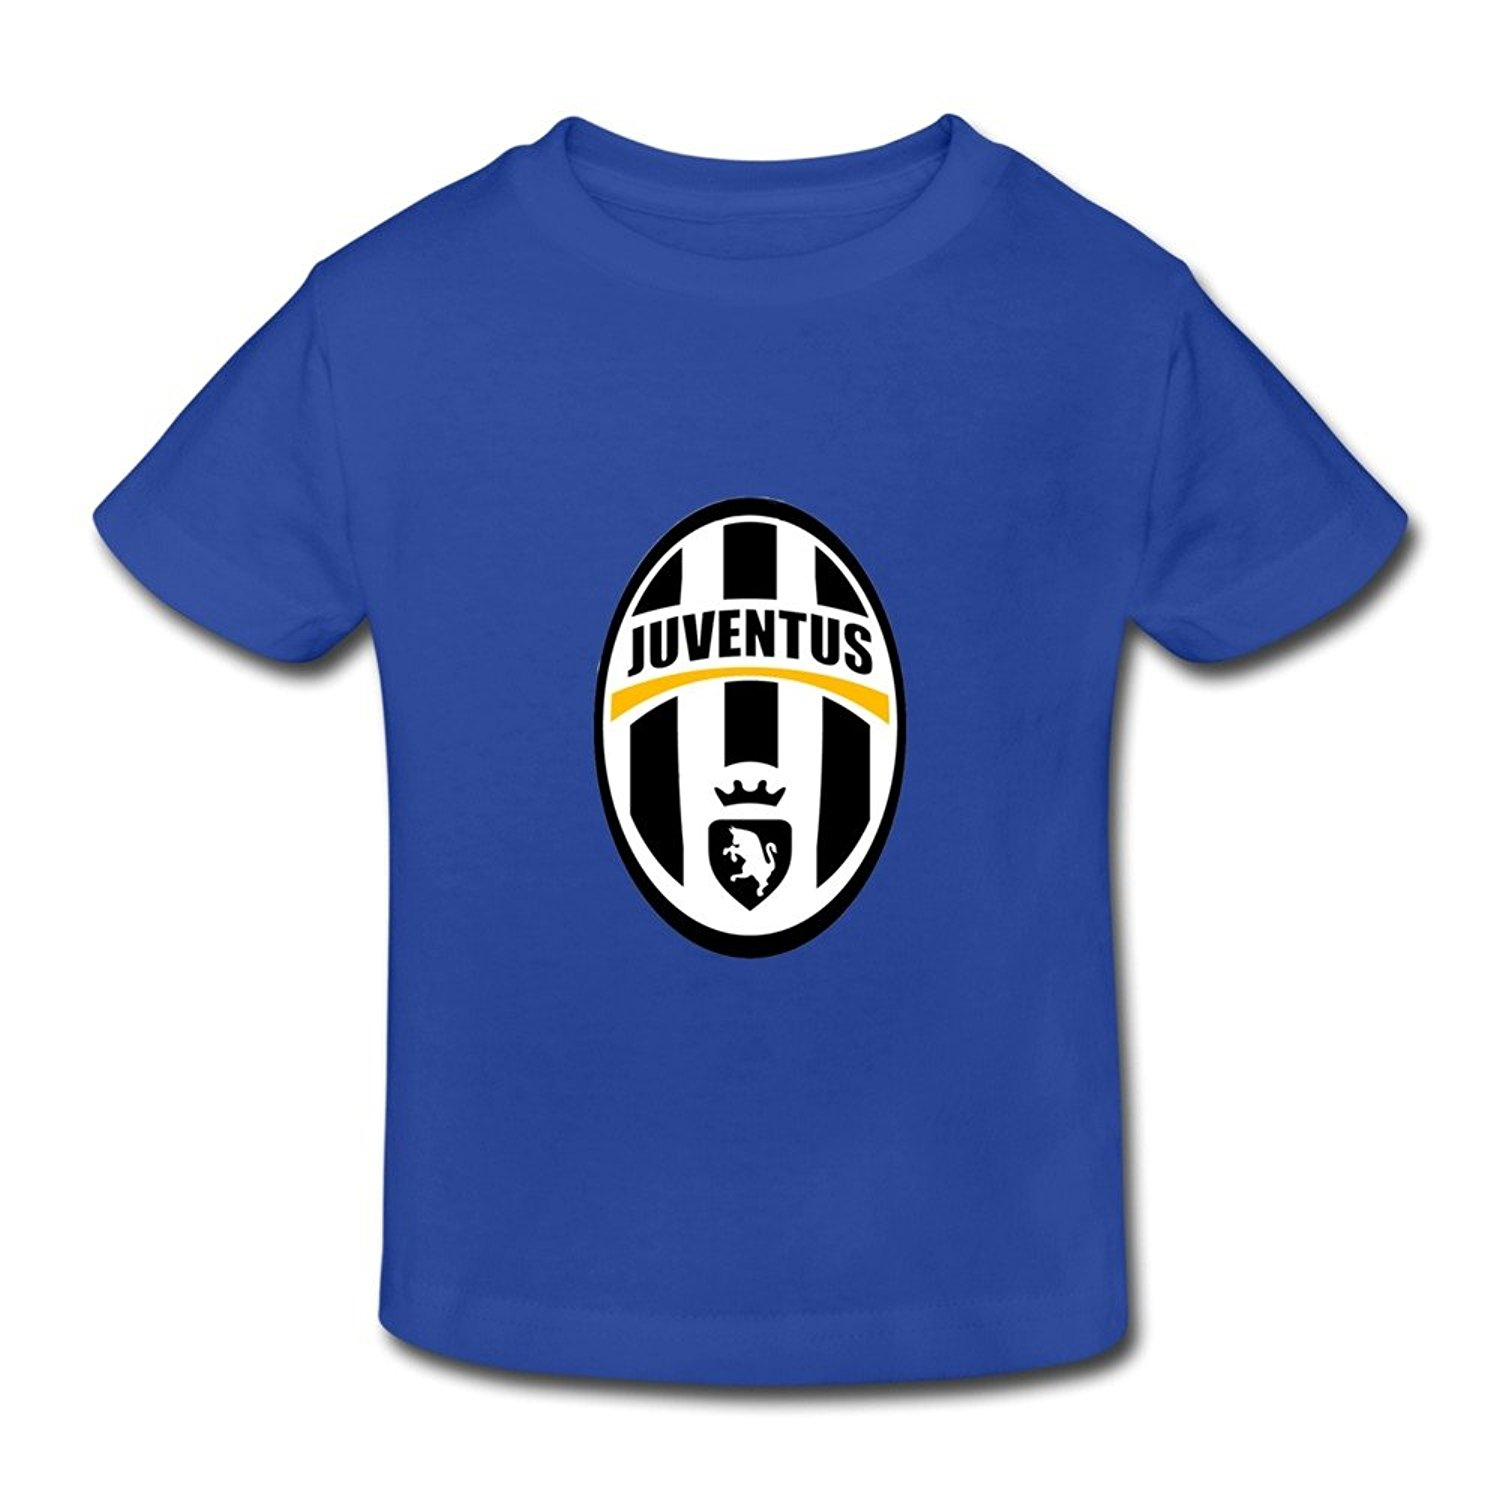 Get Quotations · Little Boys And Girls Cool Juventus Cotton T Shirt 5-6  Toddler RoyalBlue 0c28fdb3f75